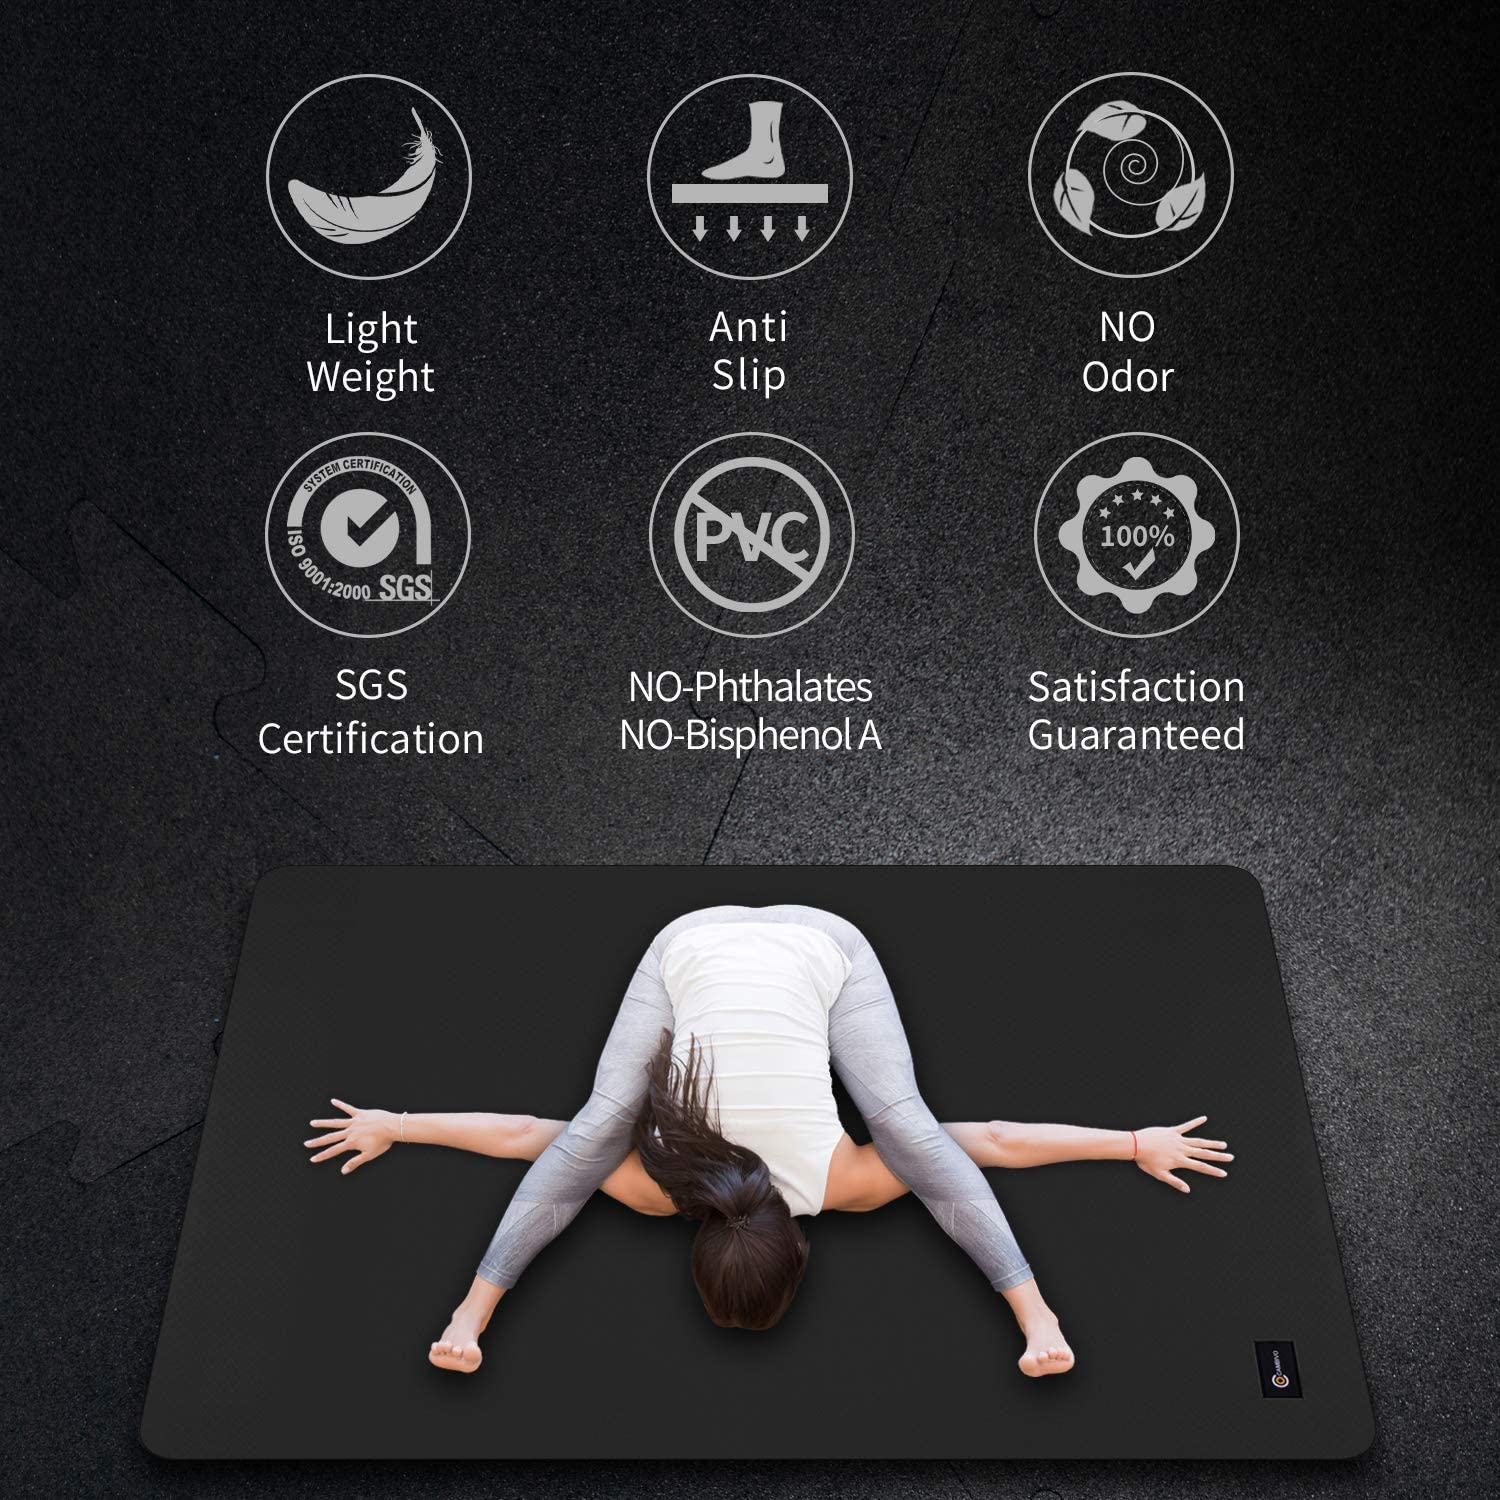 CAMBIVO Large Yoga Mat (6 x 4 x 6mm), Non-Slip Exercise Fitness Mat for Yoga, Pilates, Workout